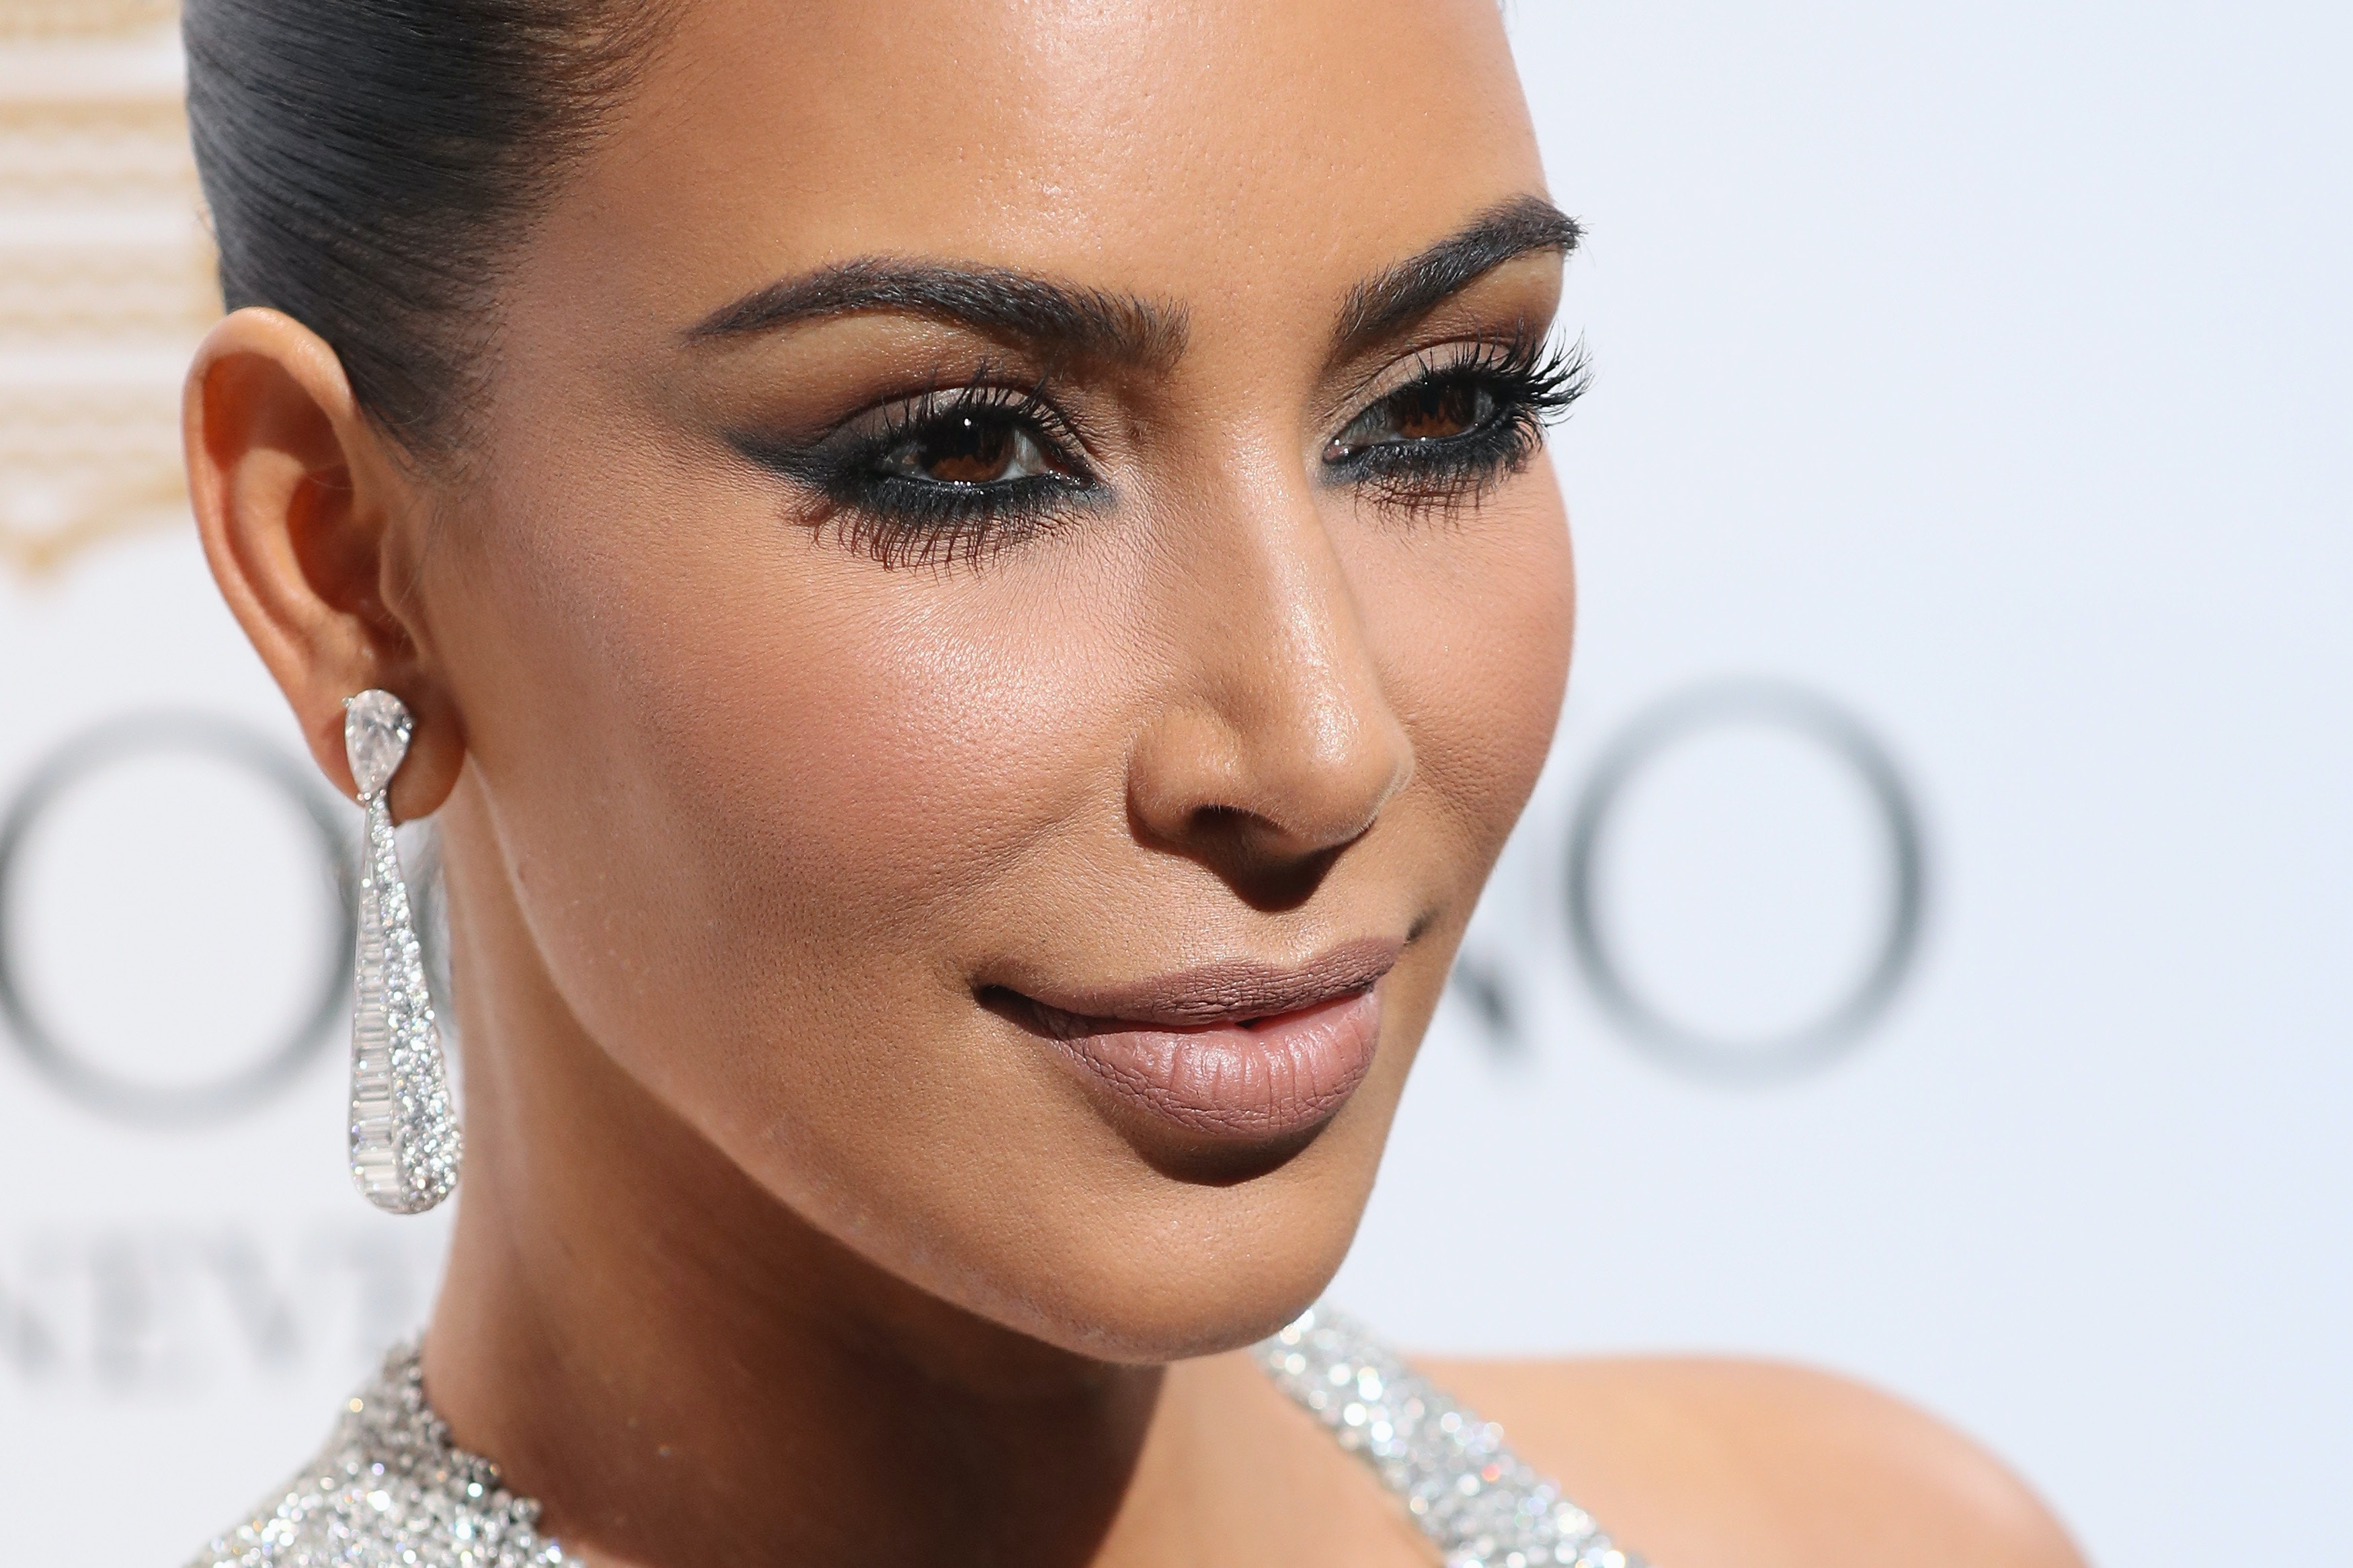 Kim Kardashian's Comments About Contouring Signal The End Of An Era